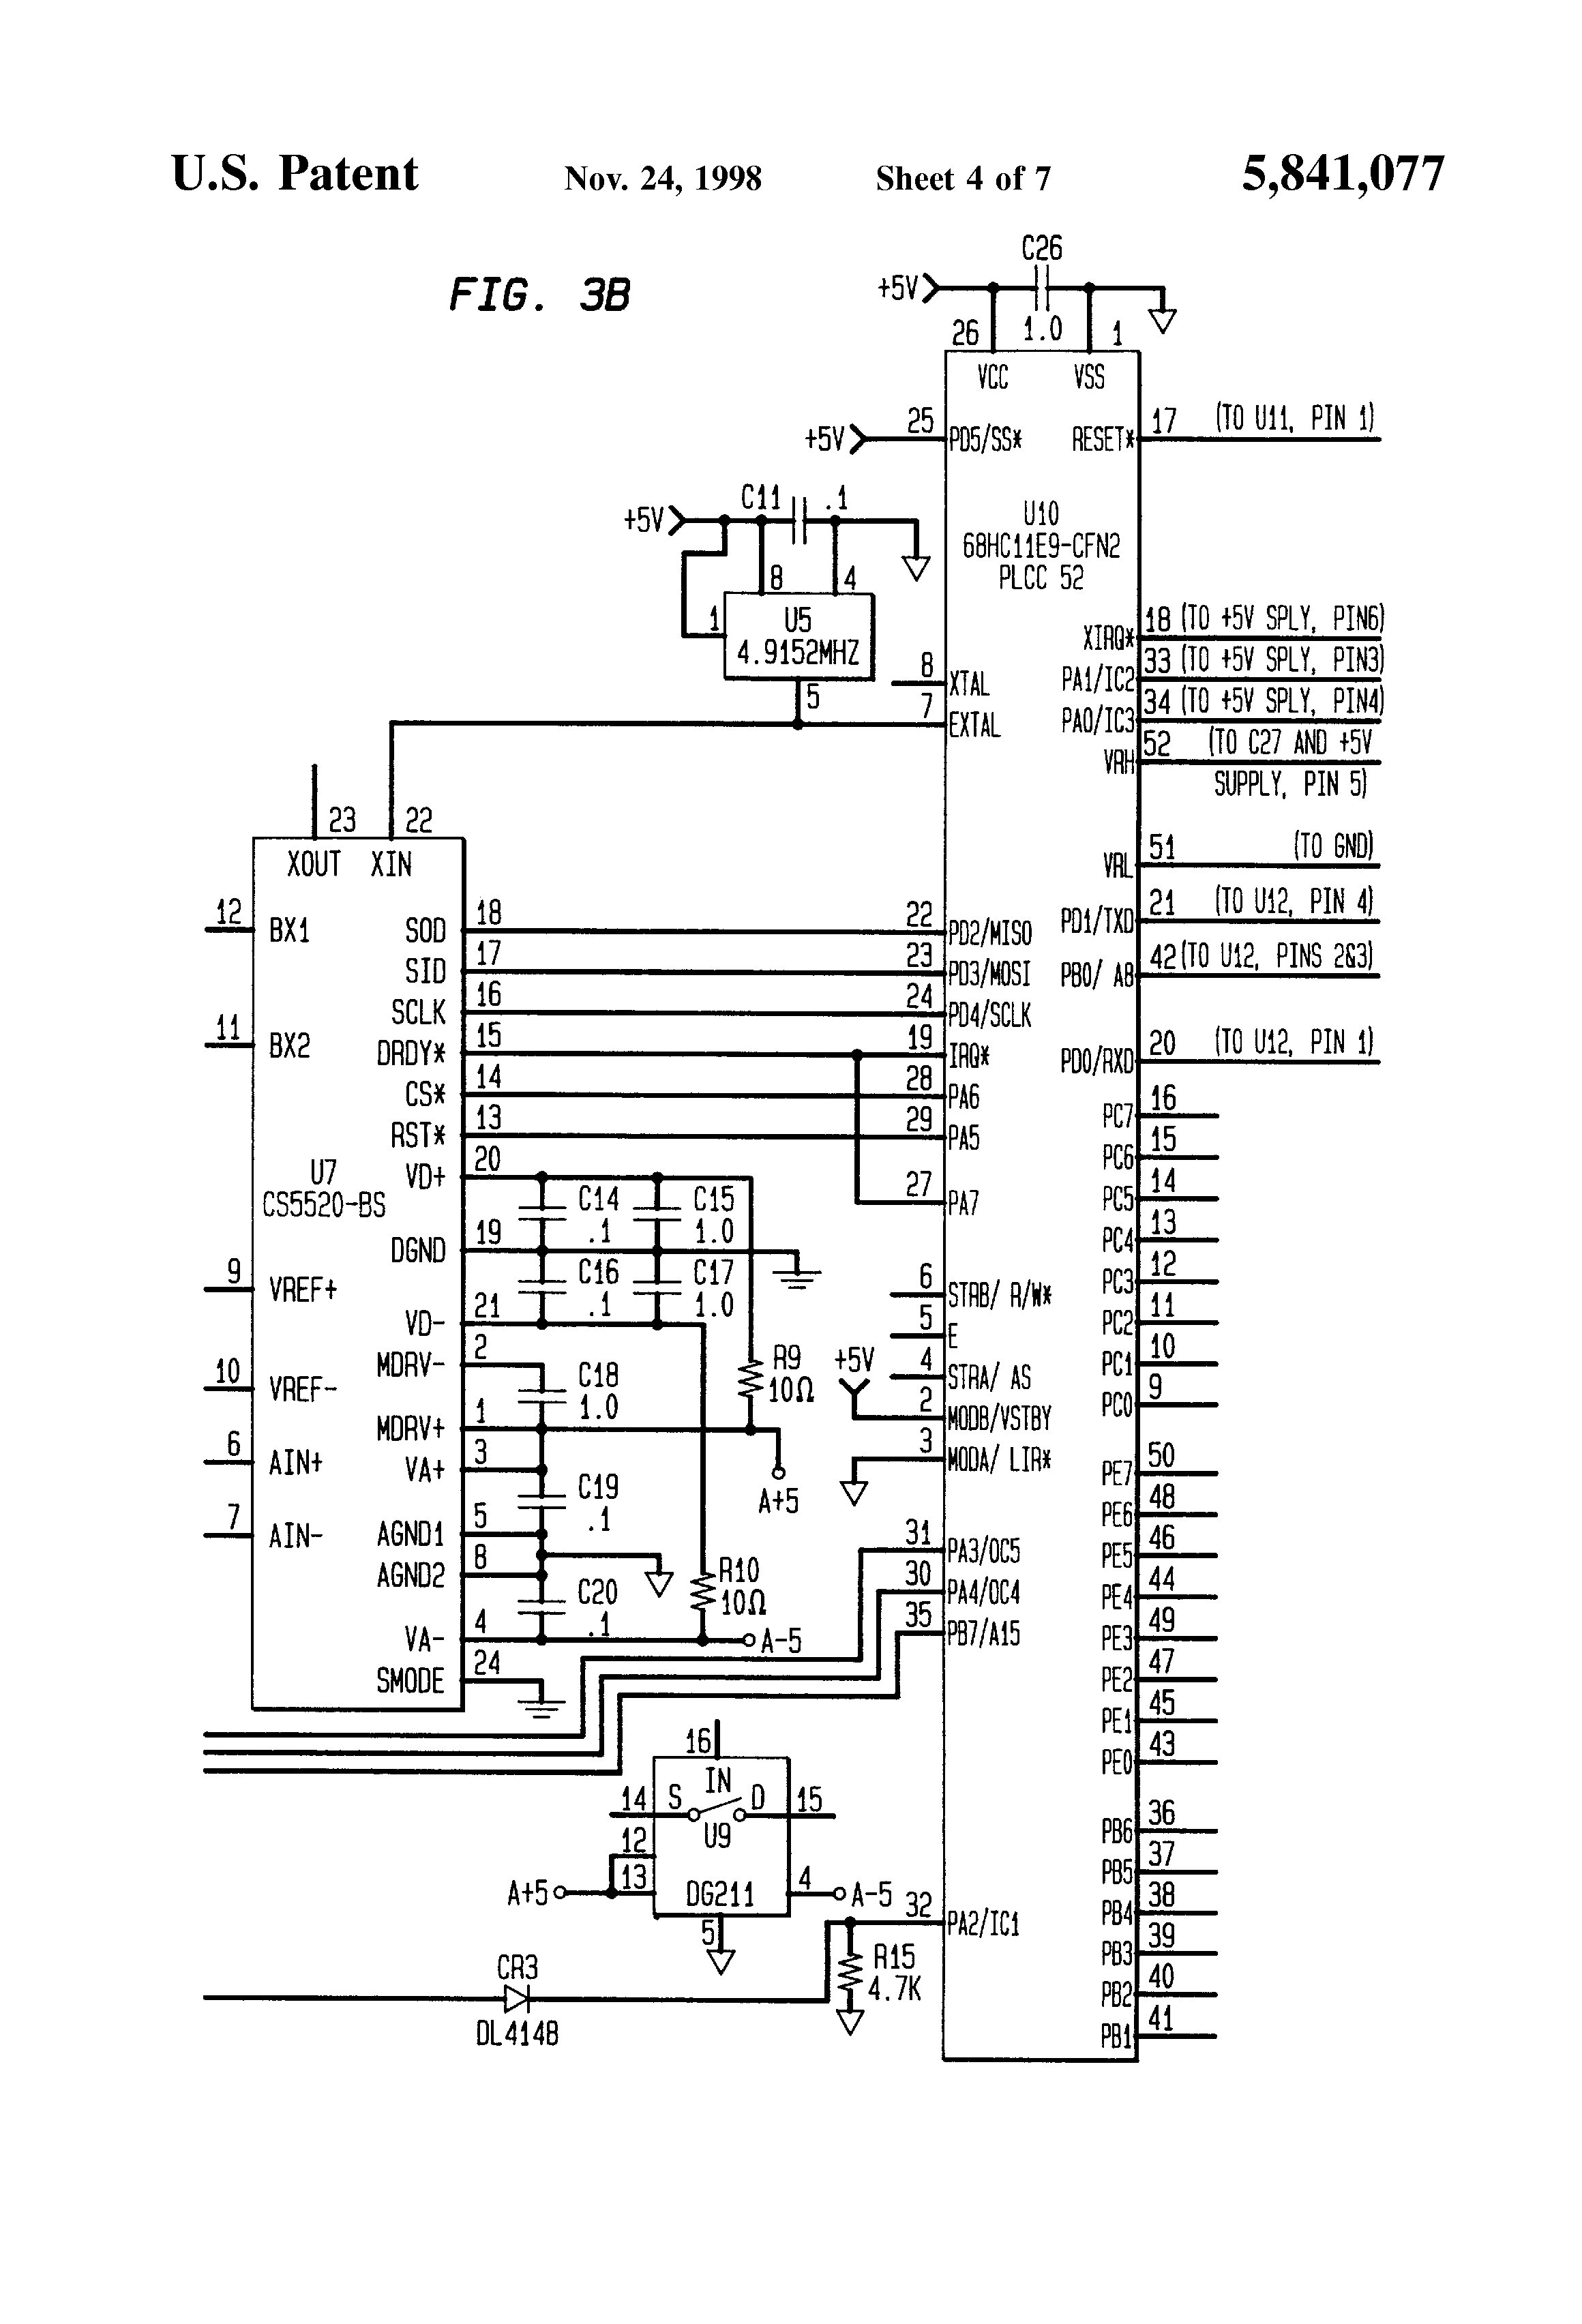 interface load cell wiring diagram Collection-Junction Box Wiring Diagram Australia New Wiring Diagram for Junction Box New Load Cell Wiring Diagram 13-t